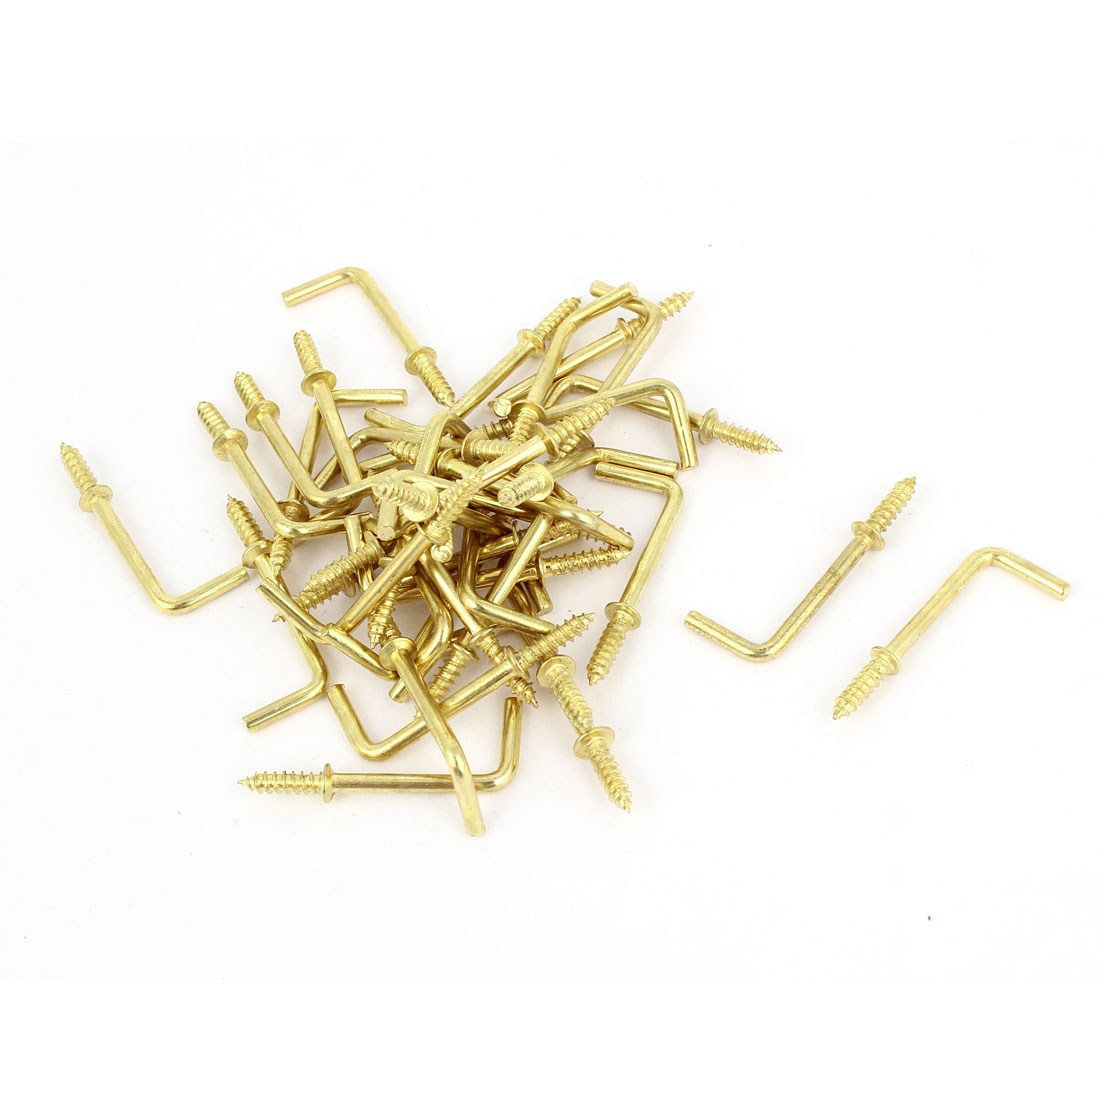 Wall Screws Mounting L Shape Coat Towel Hanging Hook Brass Tone 40 Pcs